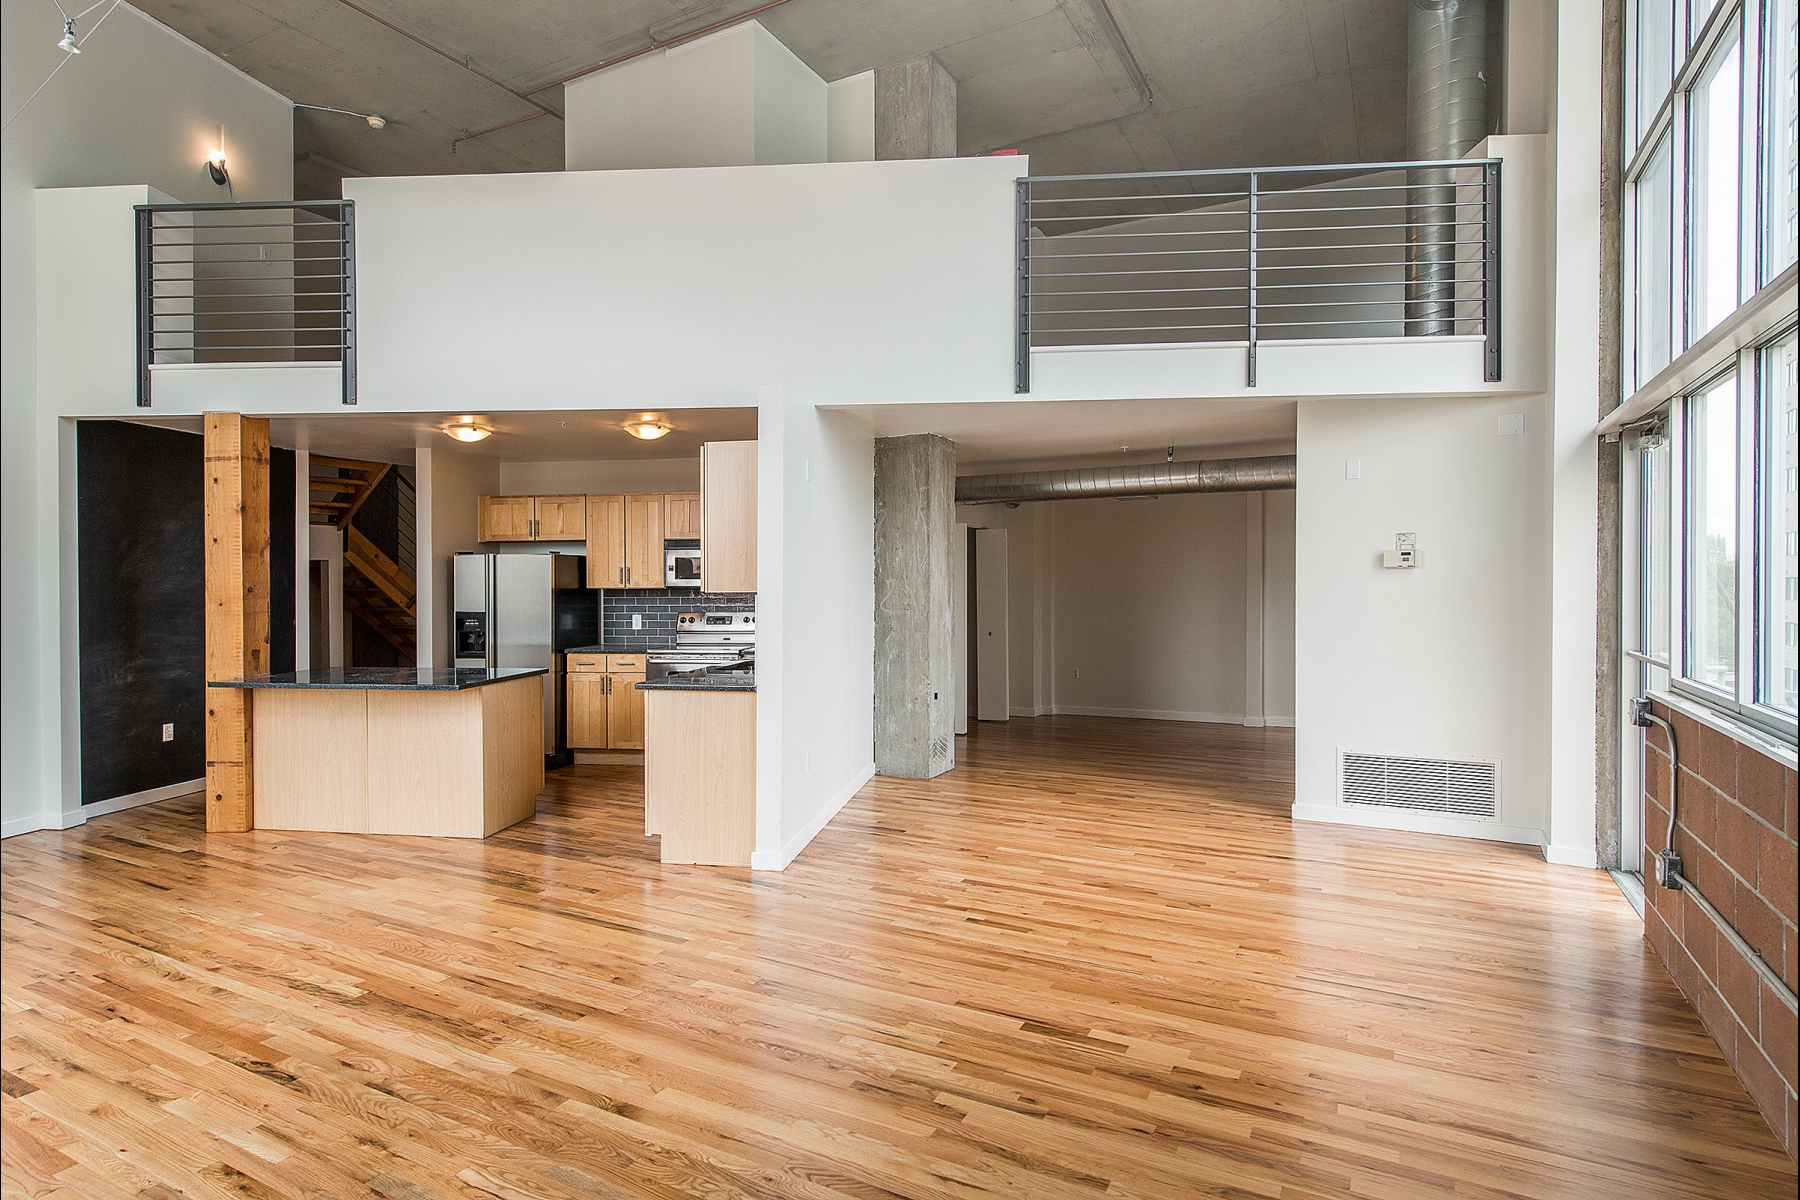 Property For Sale at Urban Chic Loft in the Heart of the Golden Triangle